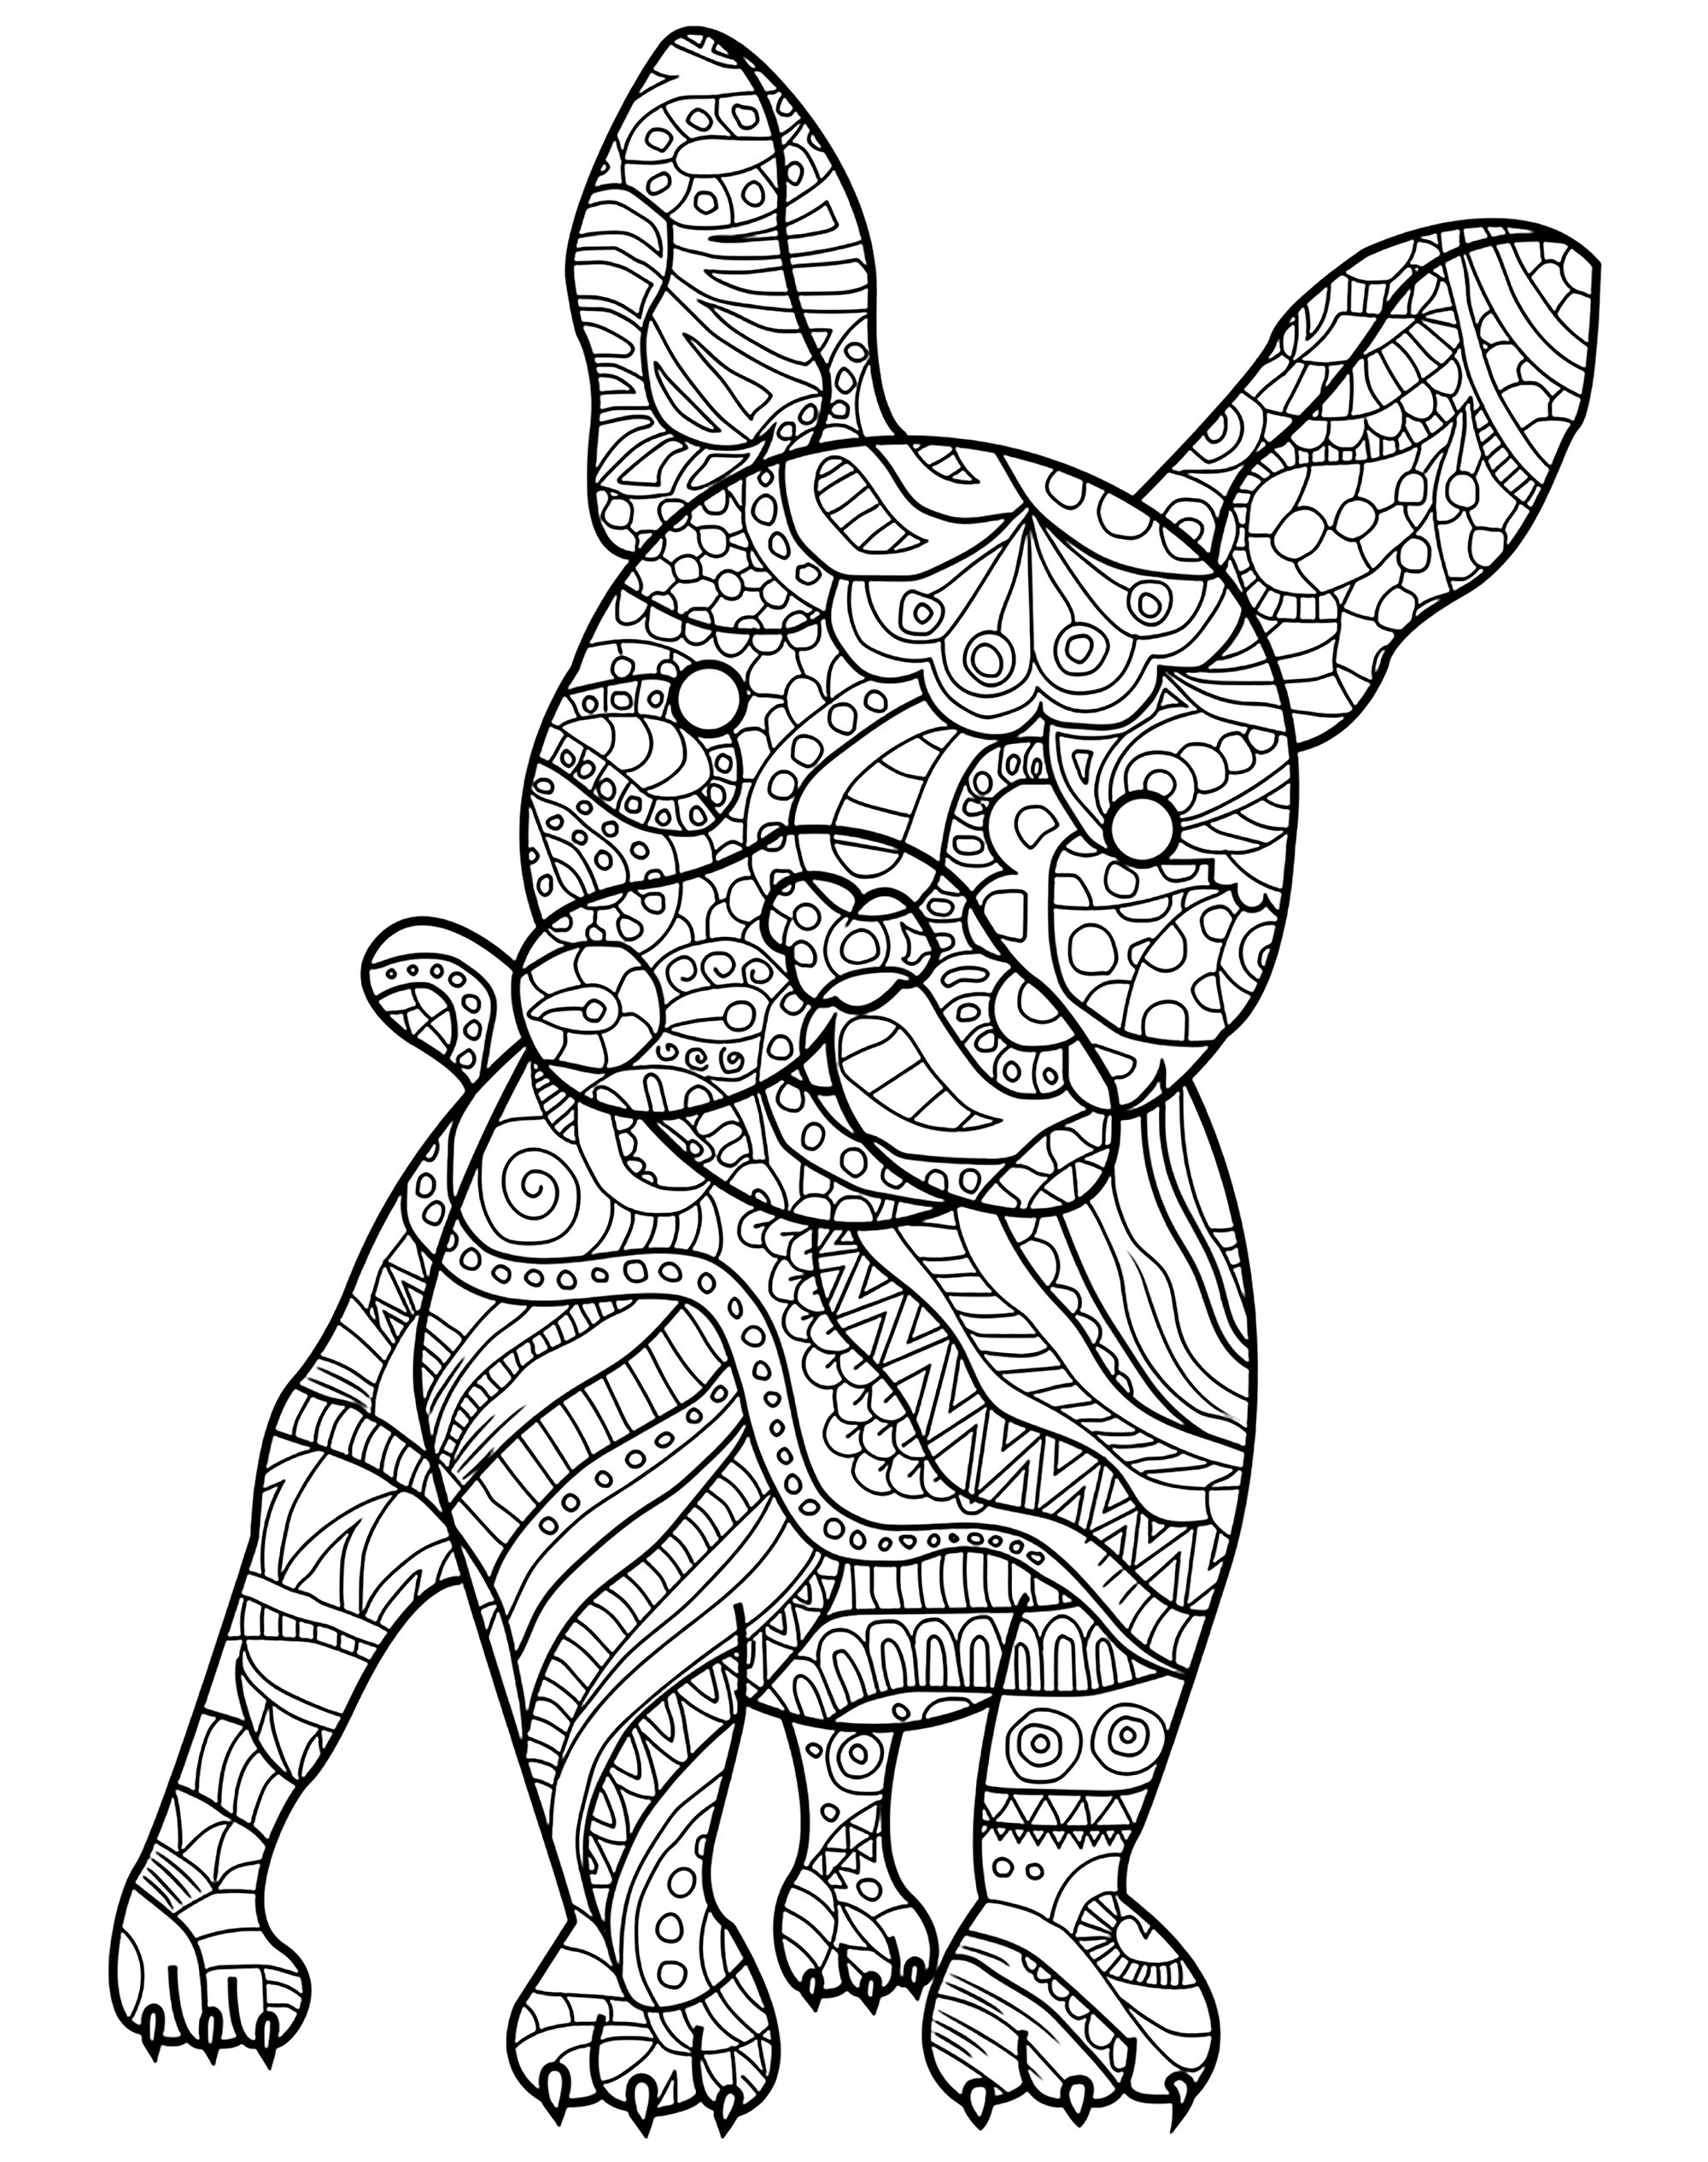 French bulldog and his small muscular body filled with pretty patterns